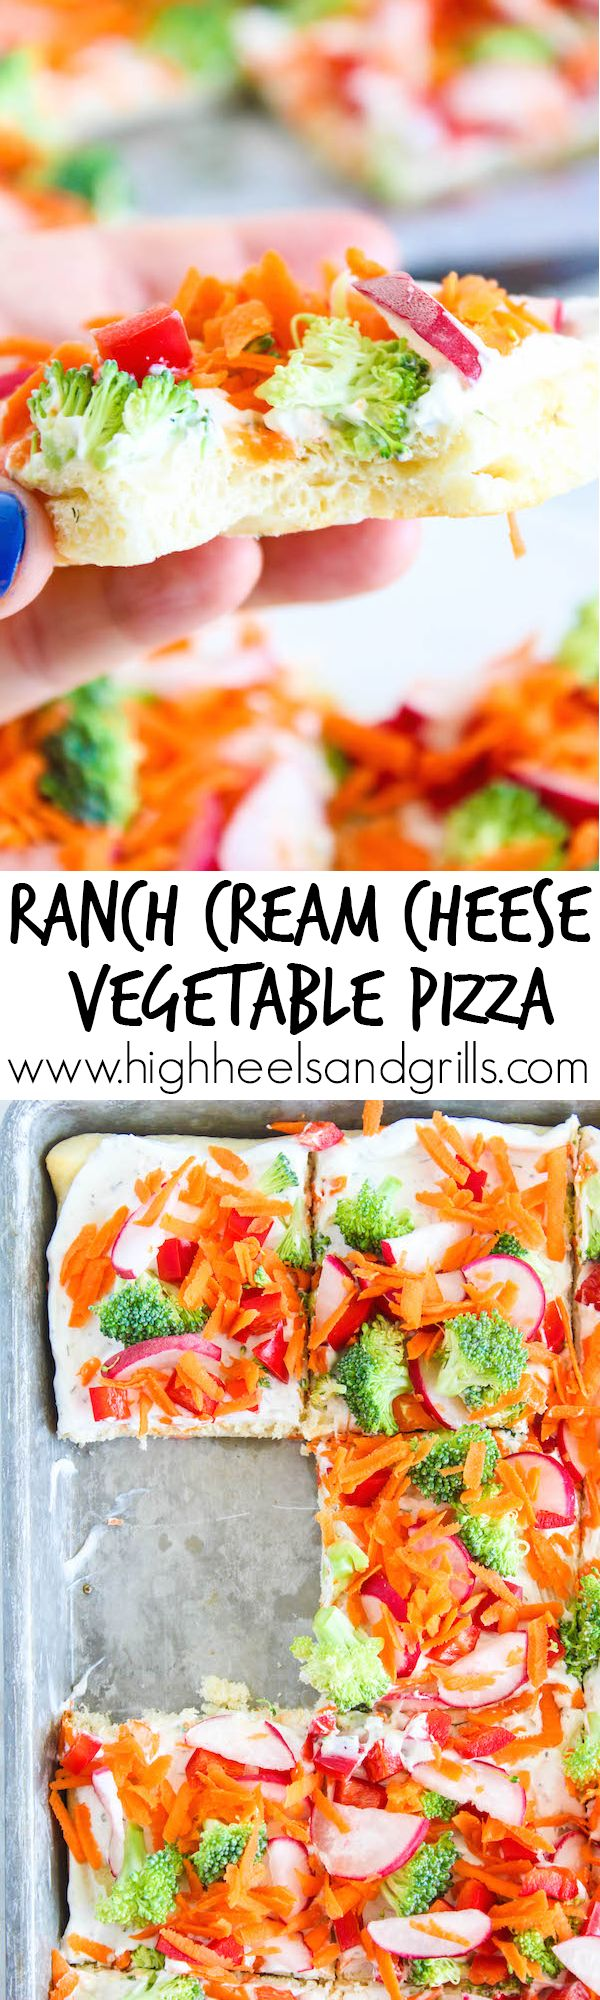 Ranch Cream Cheese Vegetable Pizza - We made this for my daughter's birthday party and everyone loved it! It is so easy to make and tastes amazing!